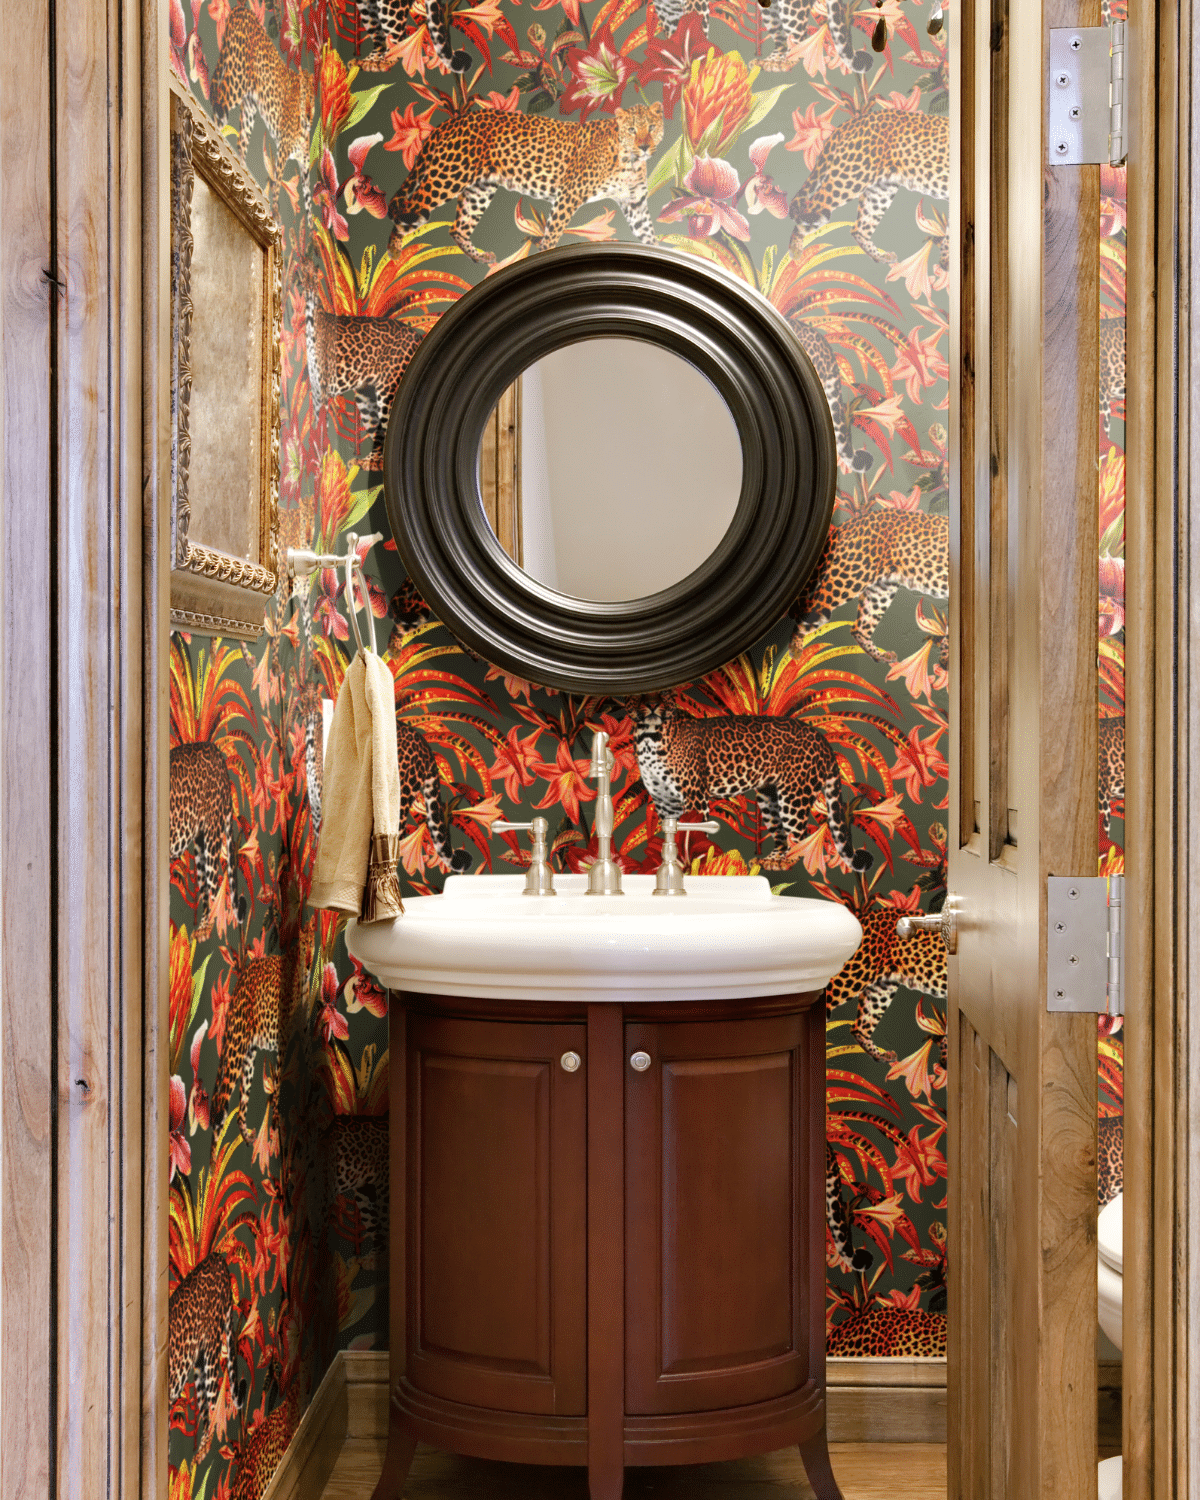 Ready to update your bathroom? Peel and Stick Wallpaper is an easy way to add color and pattern. Try these exclusive prints from SmithHönig.